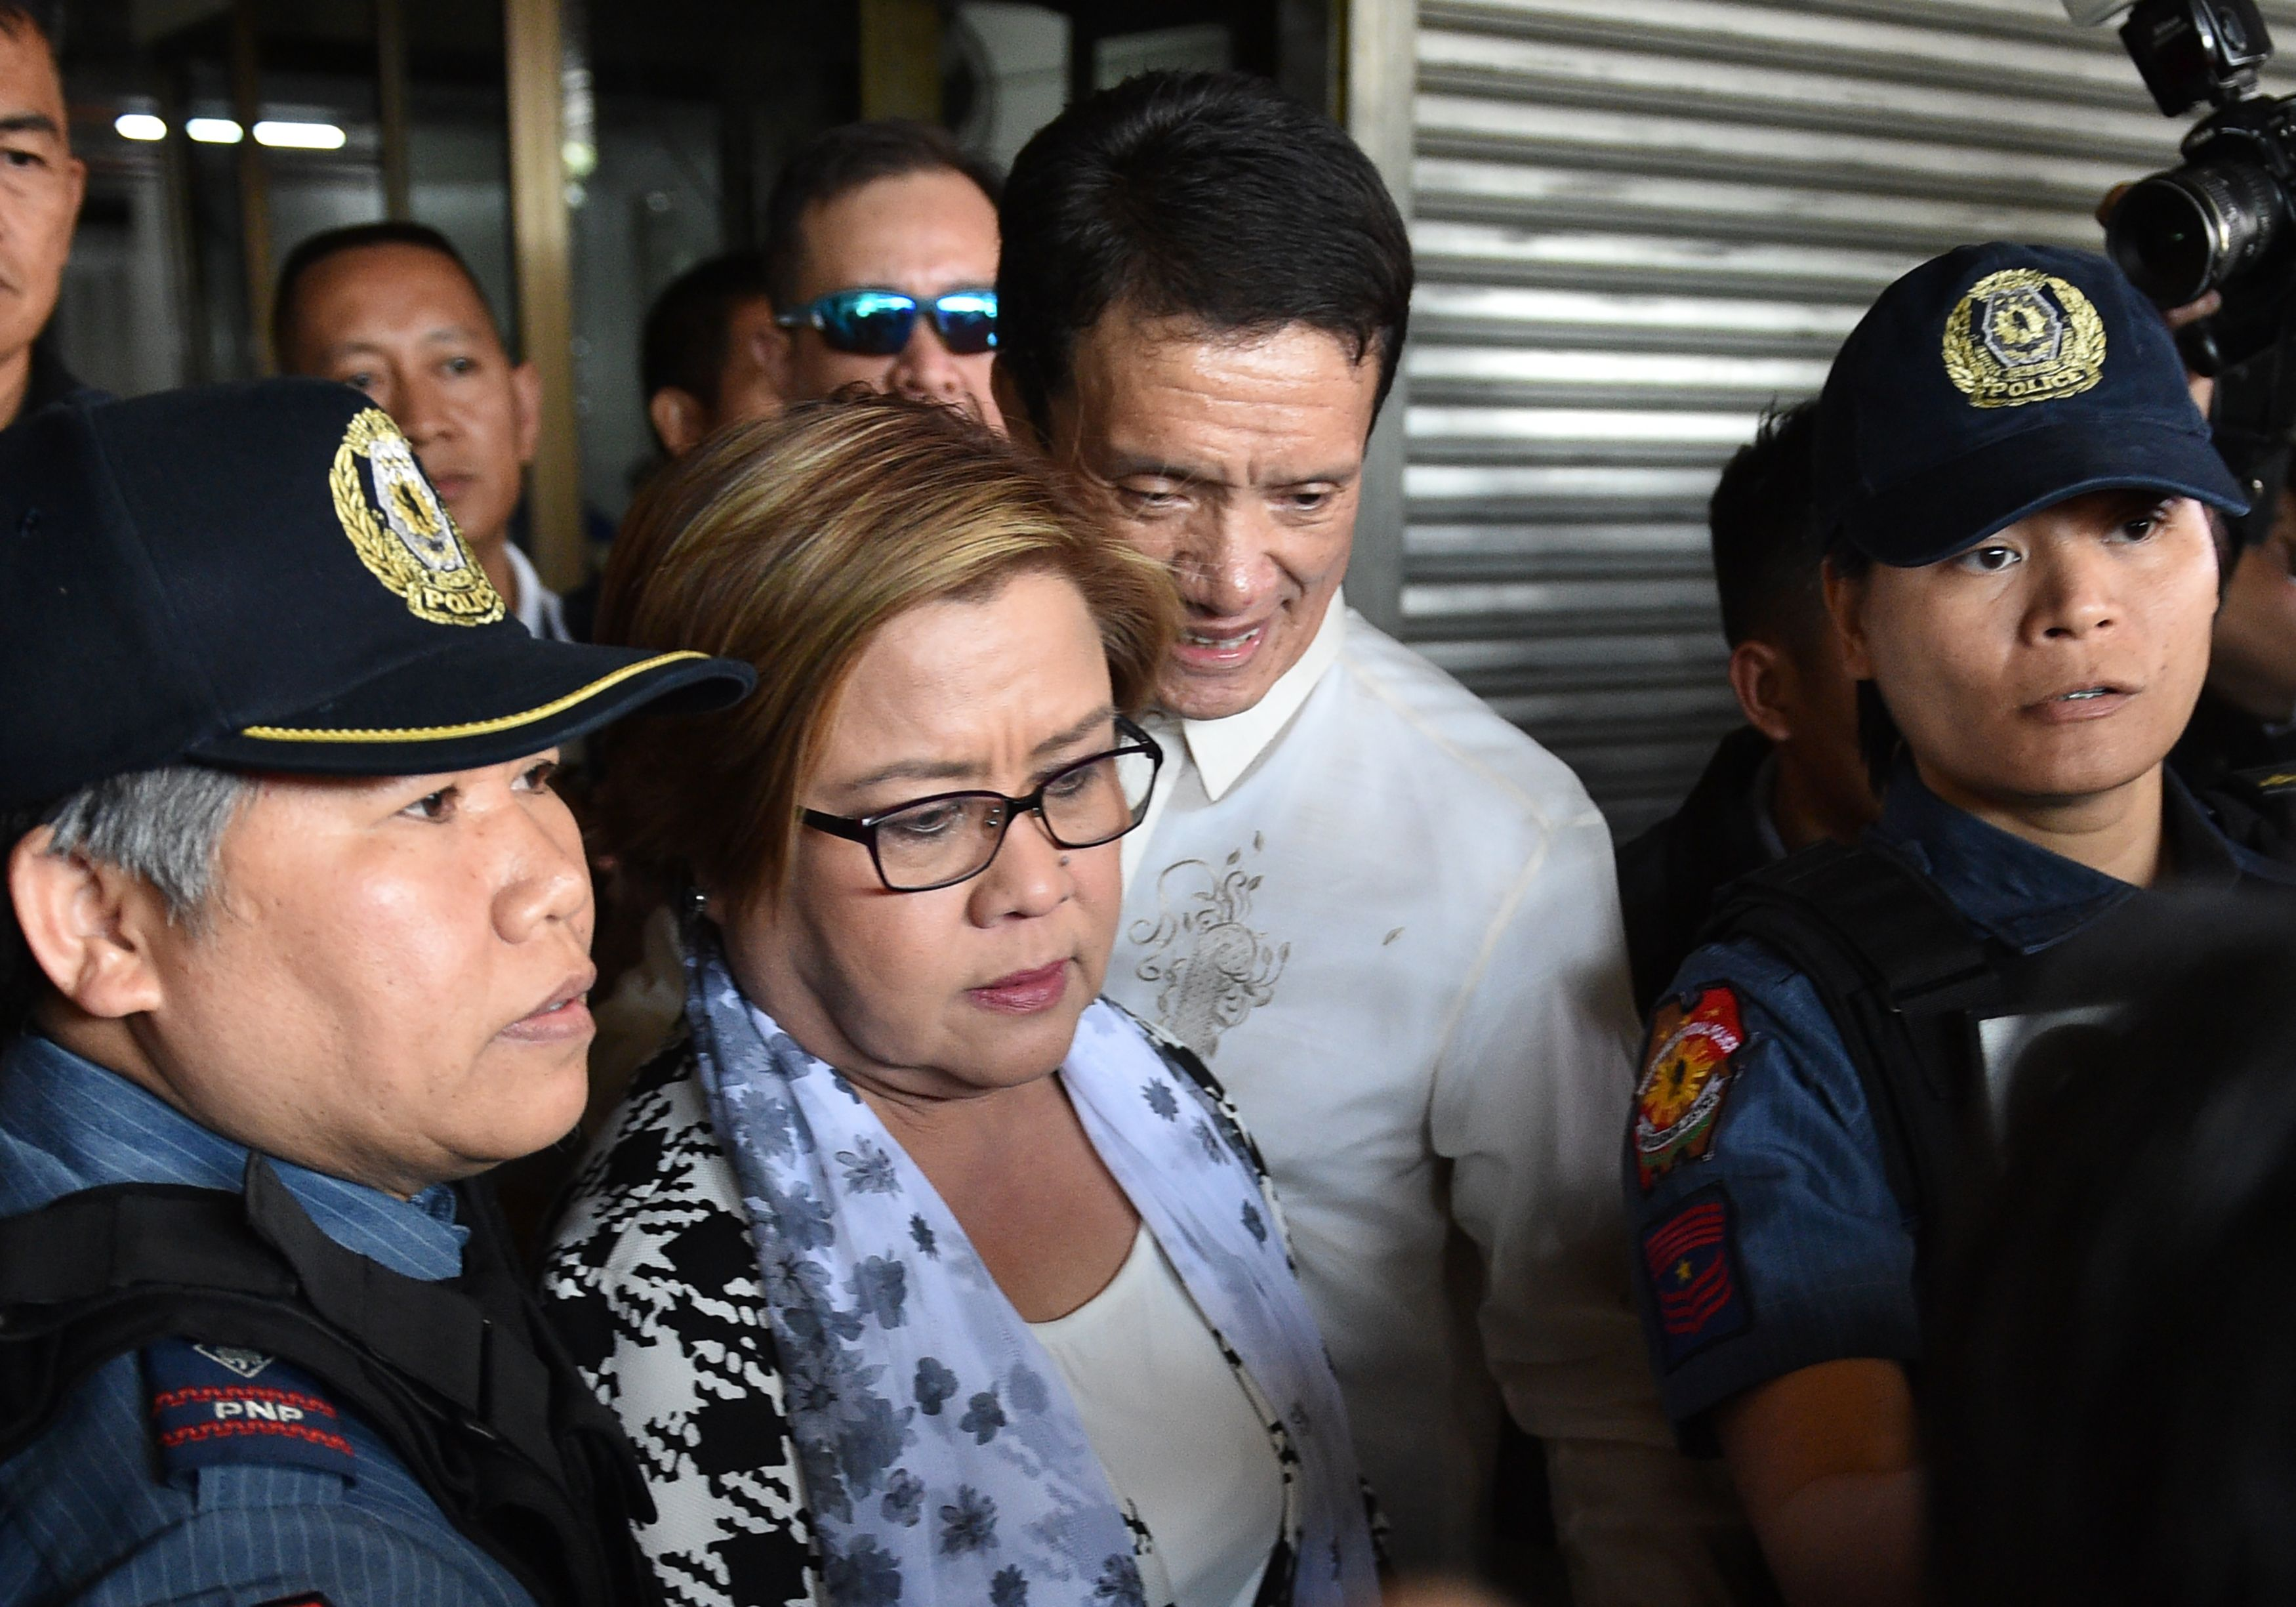 Philippine Senator Leila de Lima, center, a top critic of President Rodrigo Duterte, is escorted by police officers and her lawyer after her arrest at the Senate in Manila on Feb. 24, 2017